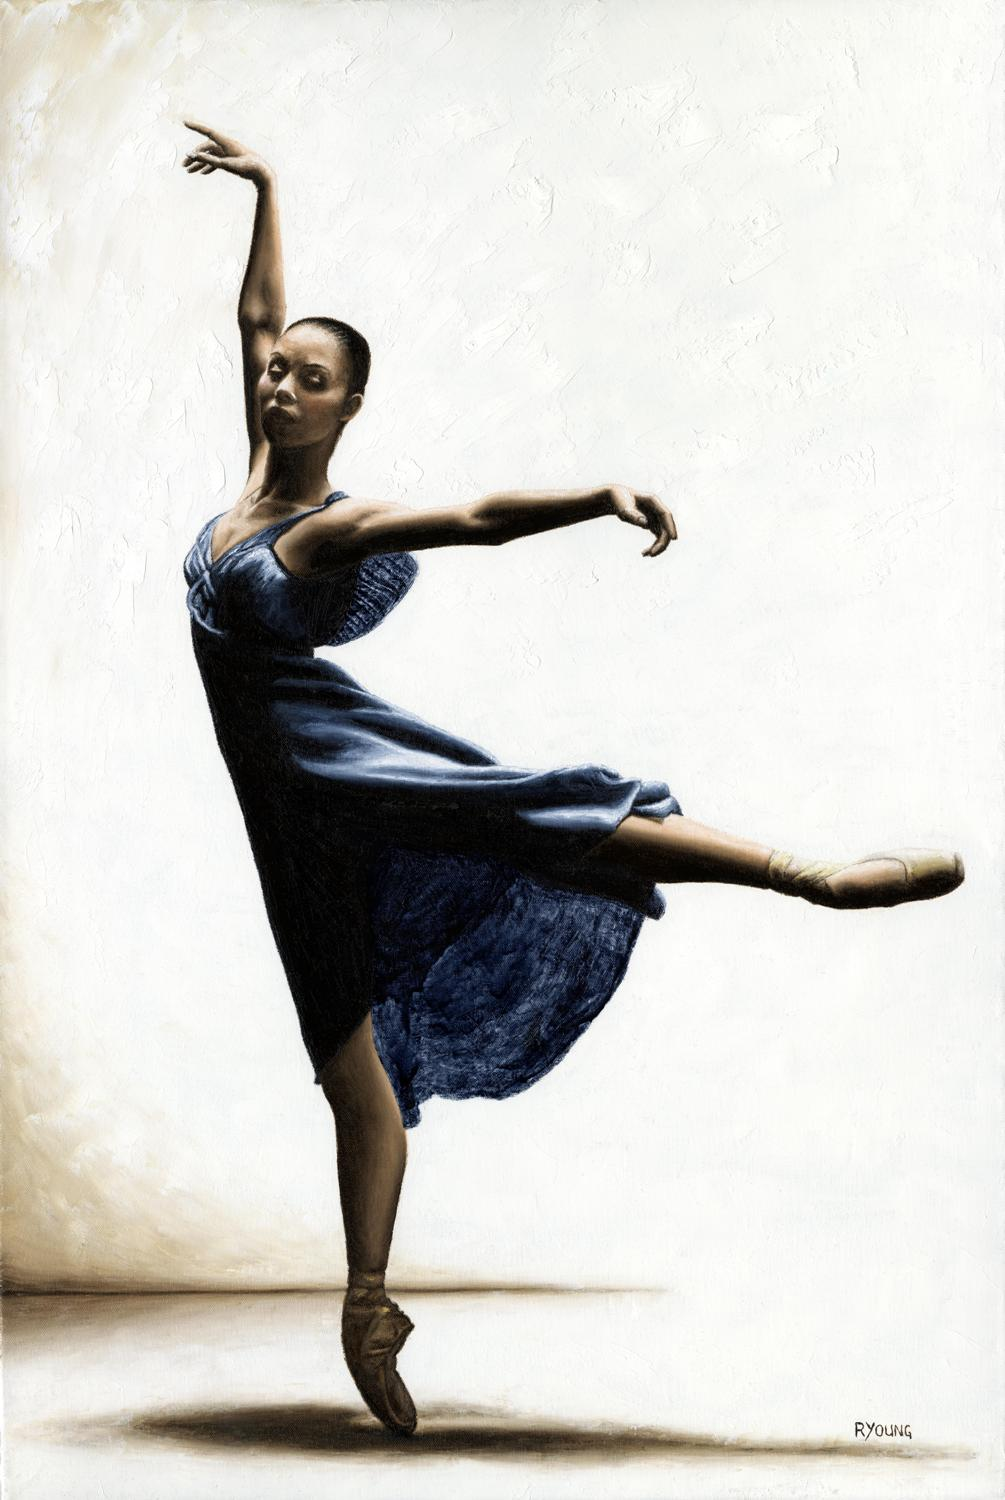 Refined Grace - Susan Jaffe Fine art original oil painting. 91cm x 61cm. 2011. Produced in cooperation with Susan Jaffe and Gregory Heisler